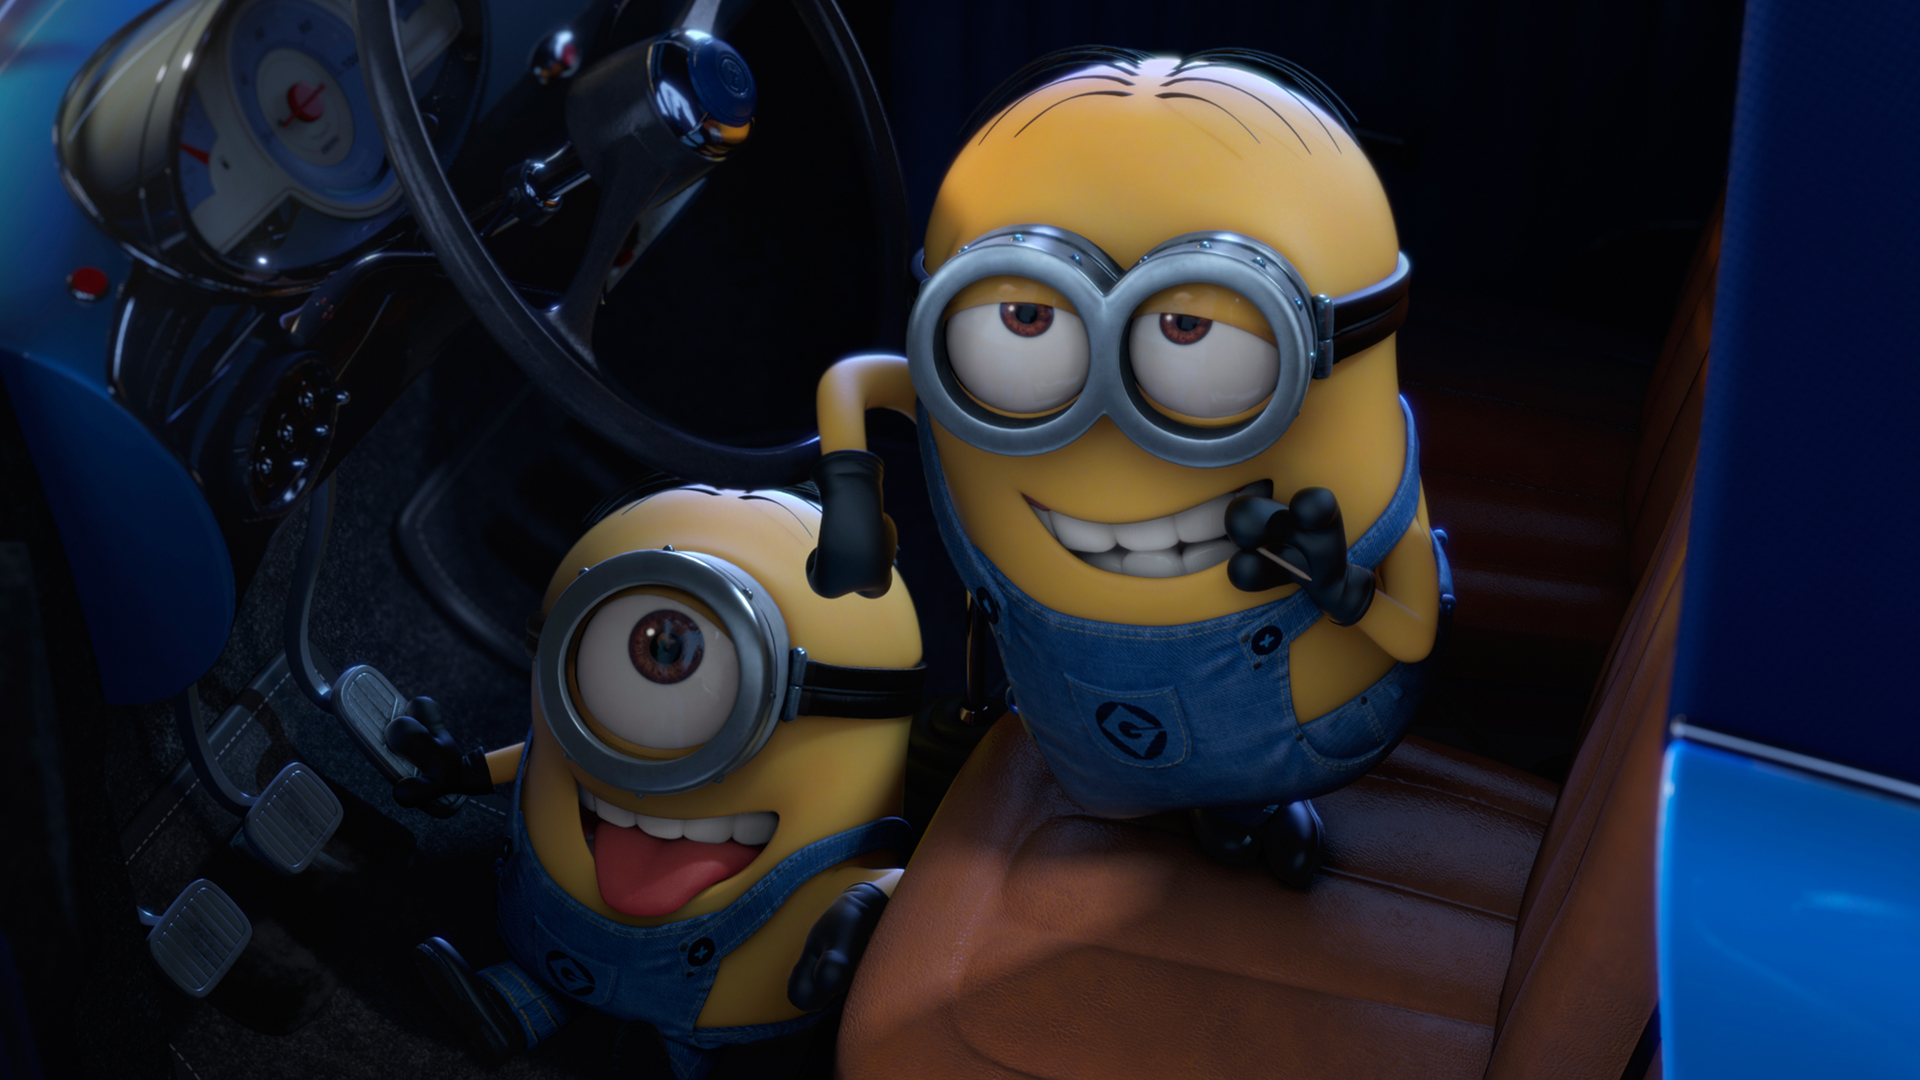 download 1920x1080 wallpaper despicable me 2 animated movie, minions